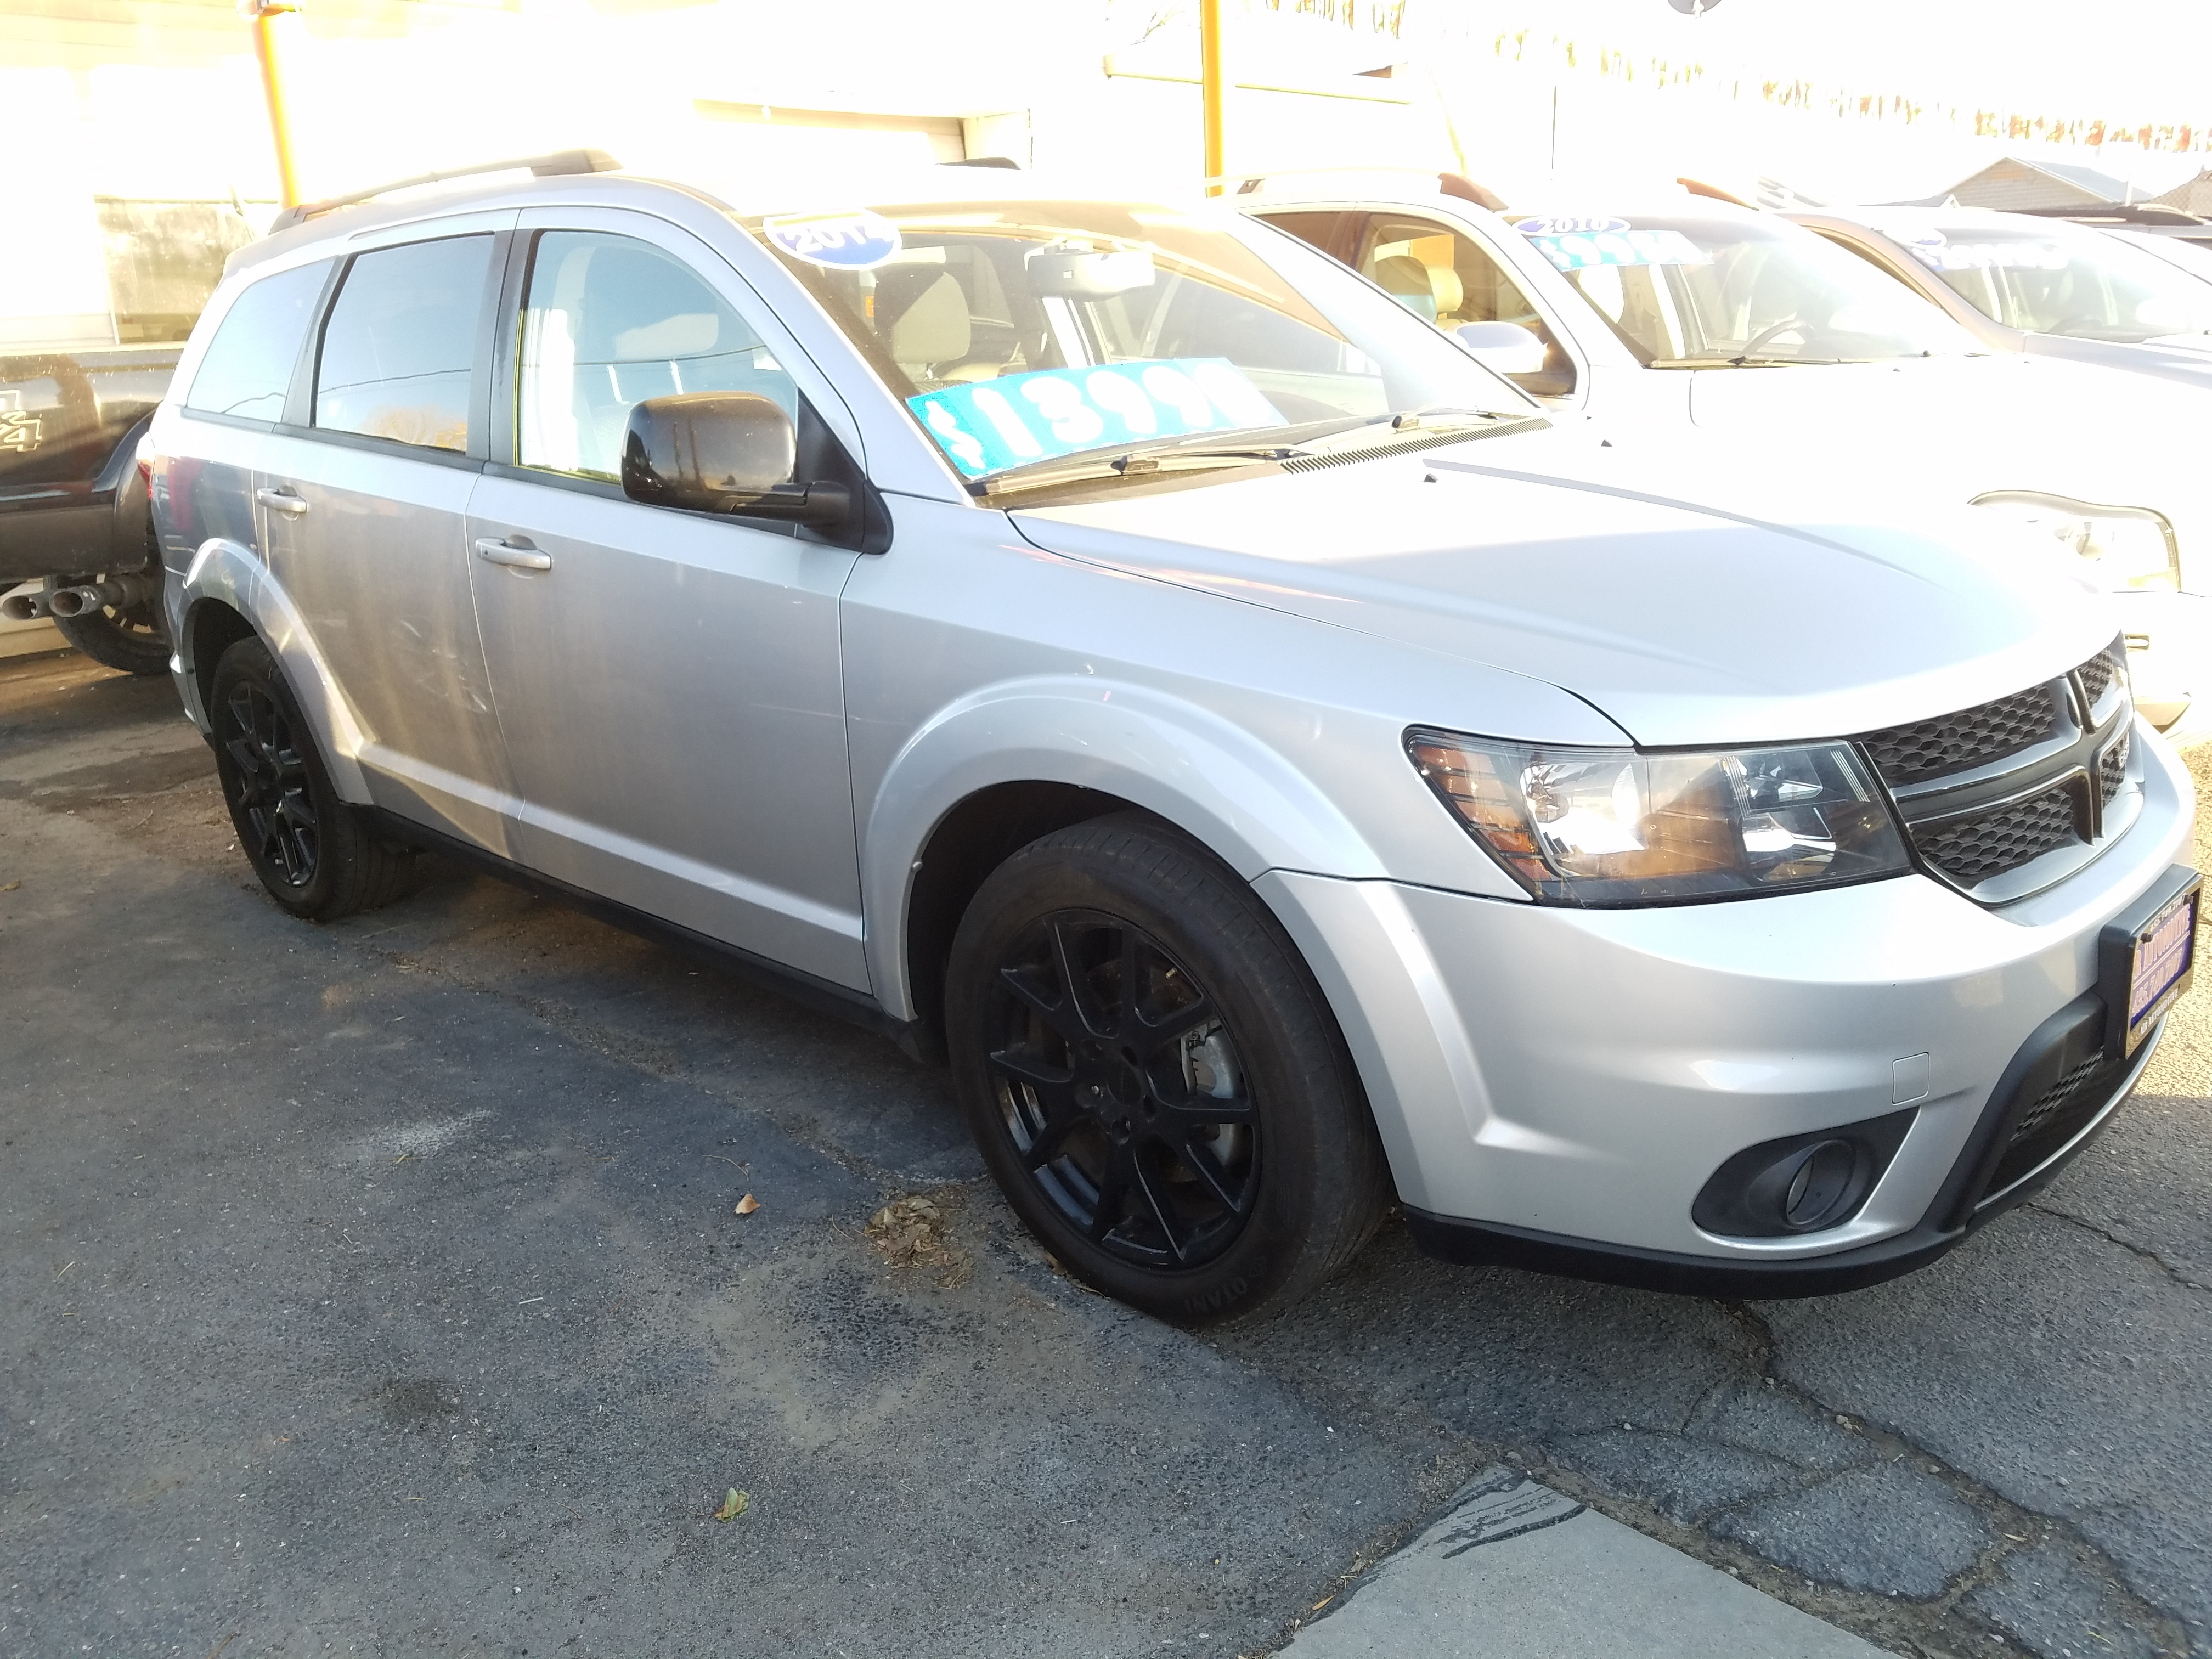 2014 DODGE JOURNEY AWD  $13,900